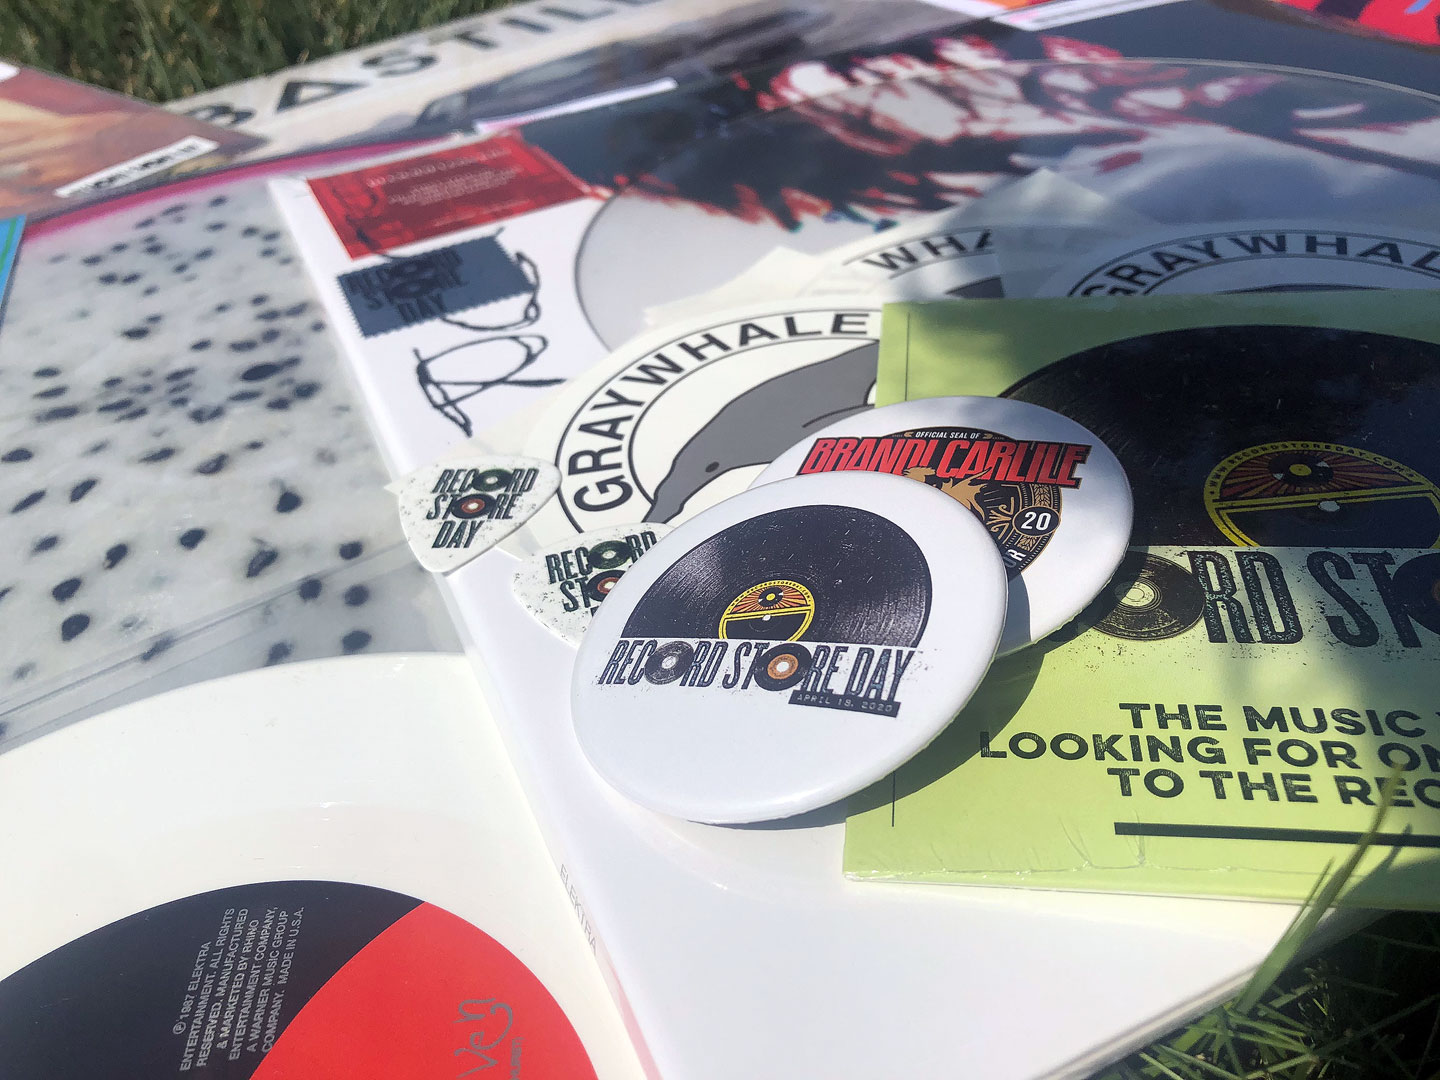 Record Store Day merchandise